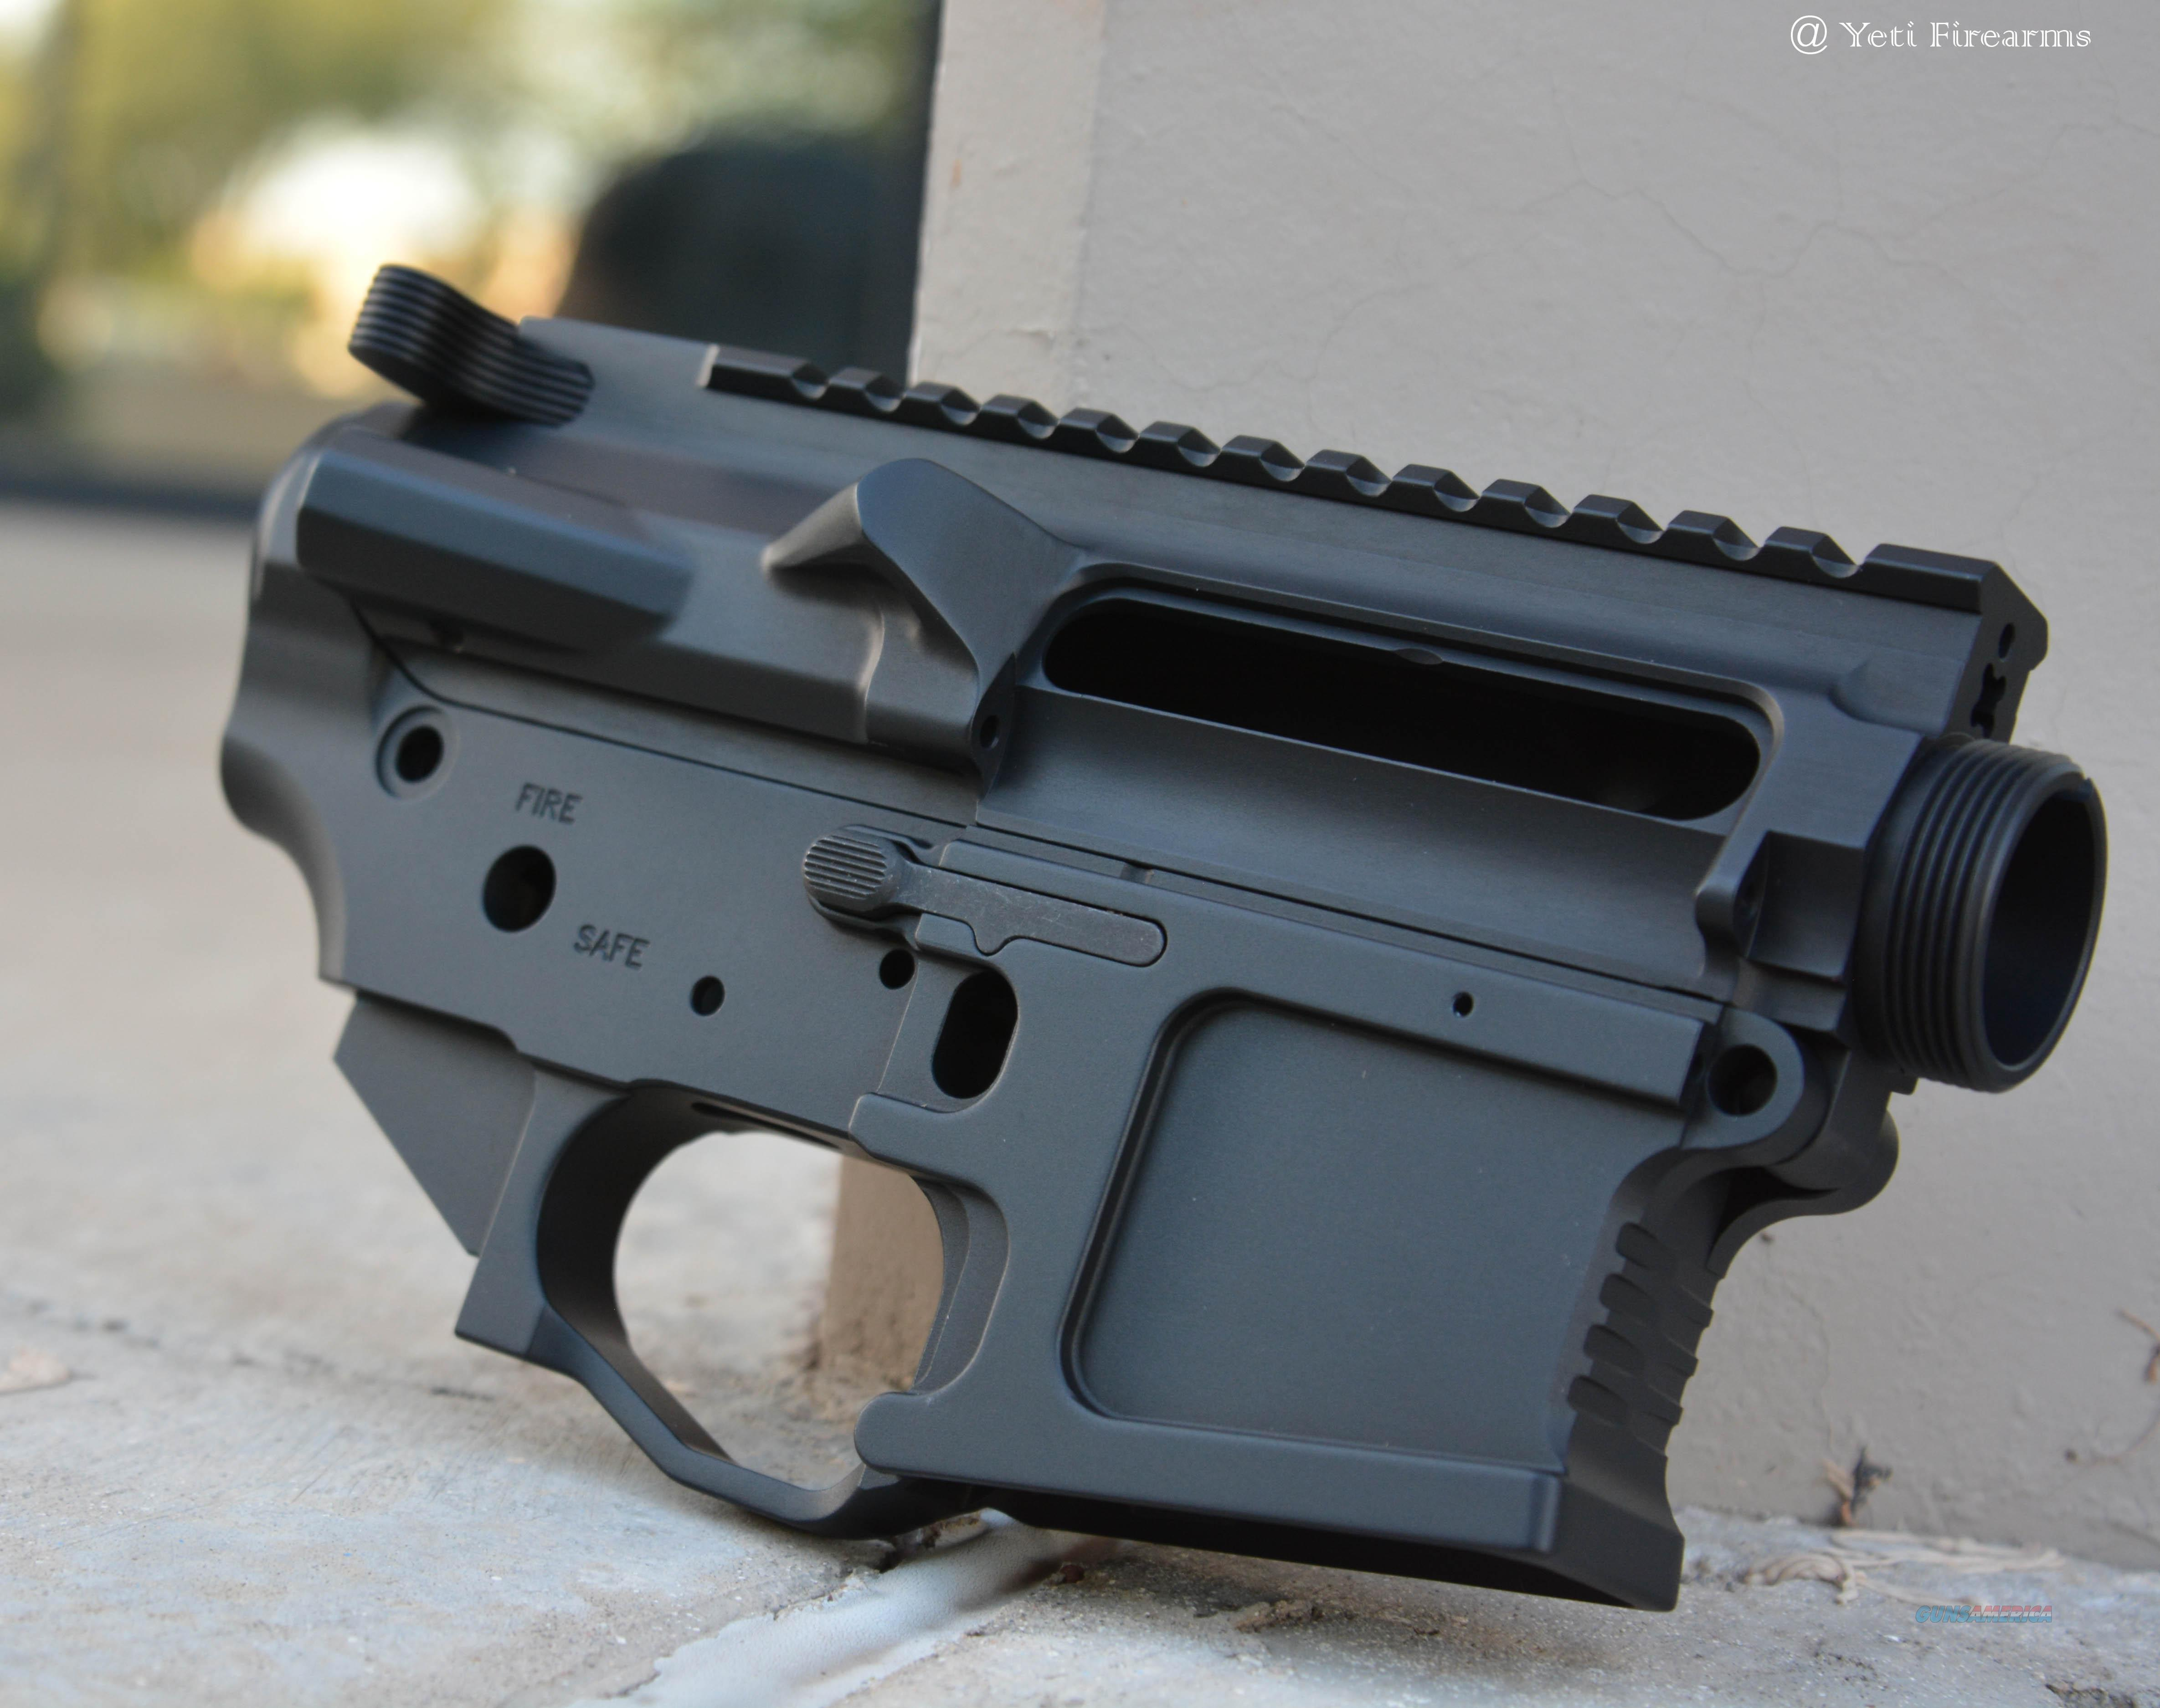 Mega Arms AR-15 Billet Ambi Receiver Set M0910-HA  Guns > Rifles > AR-15 Rifles - Small Manufacturers > Lower Only